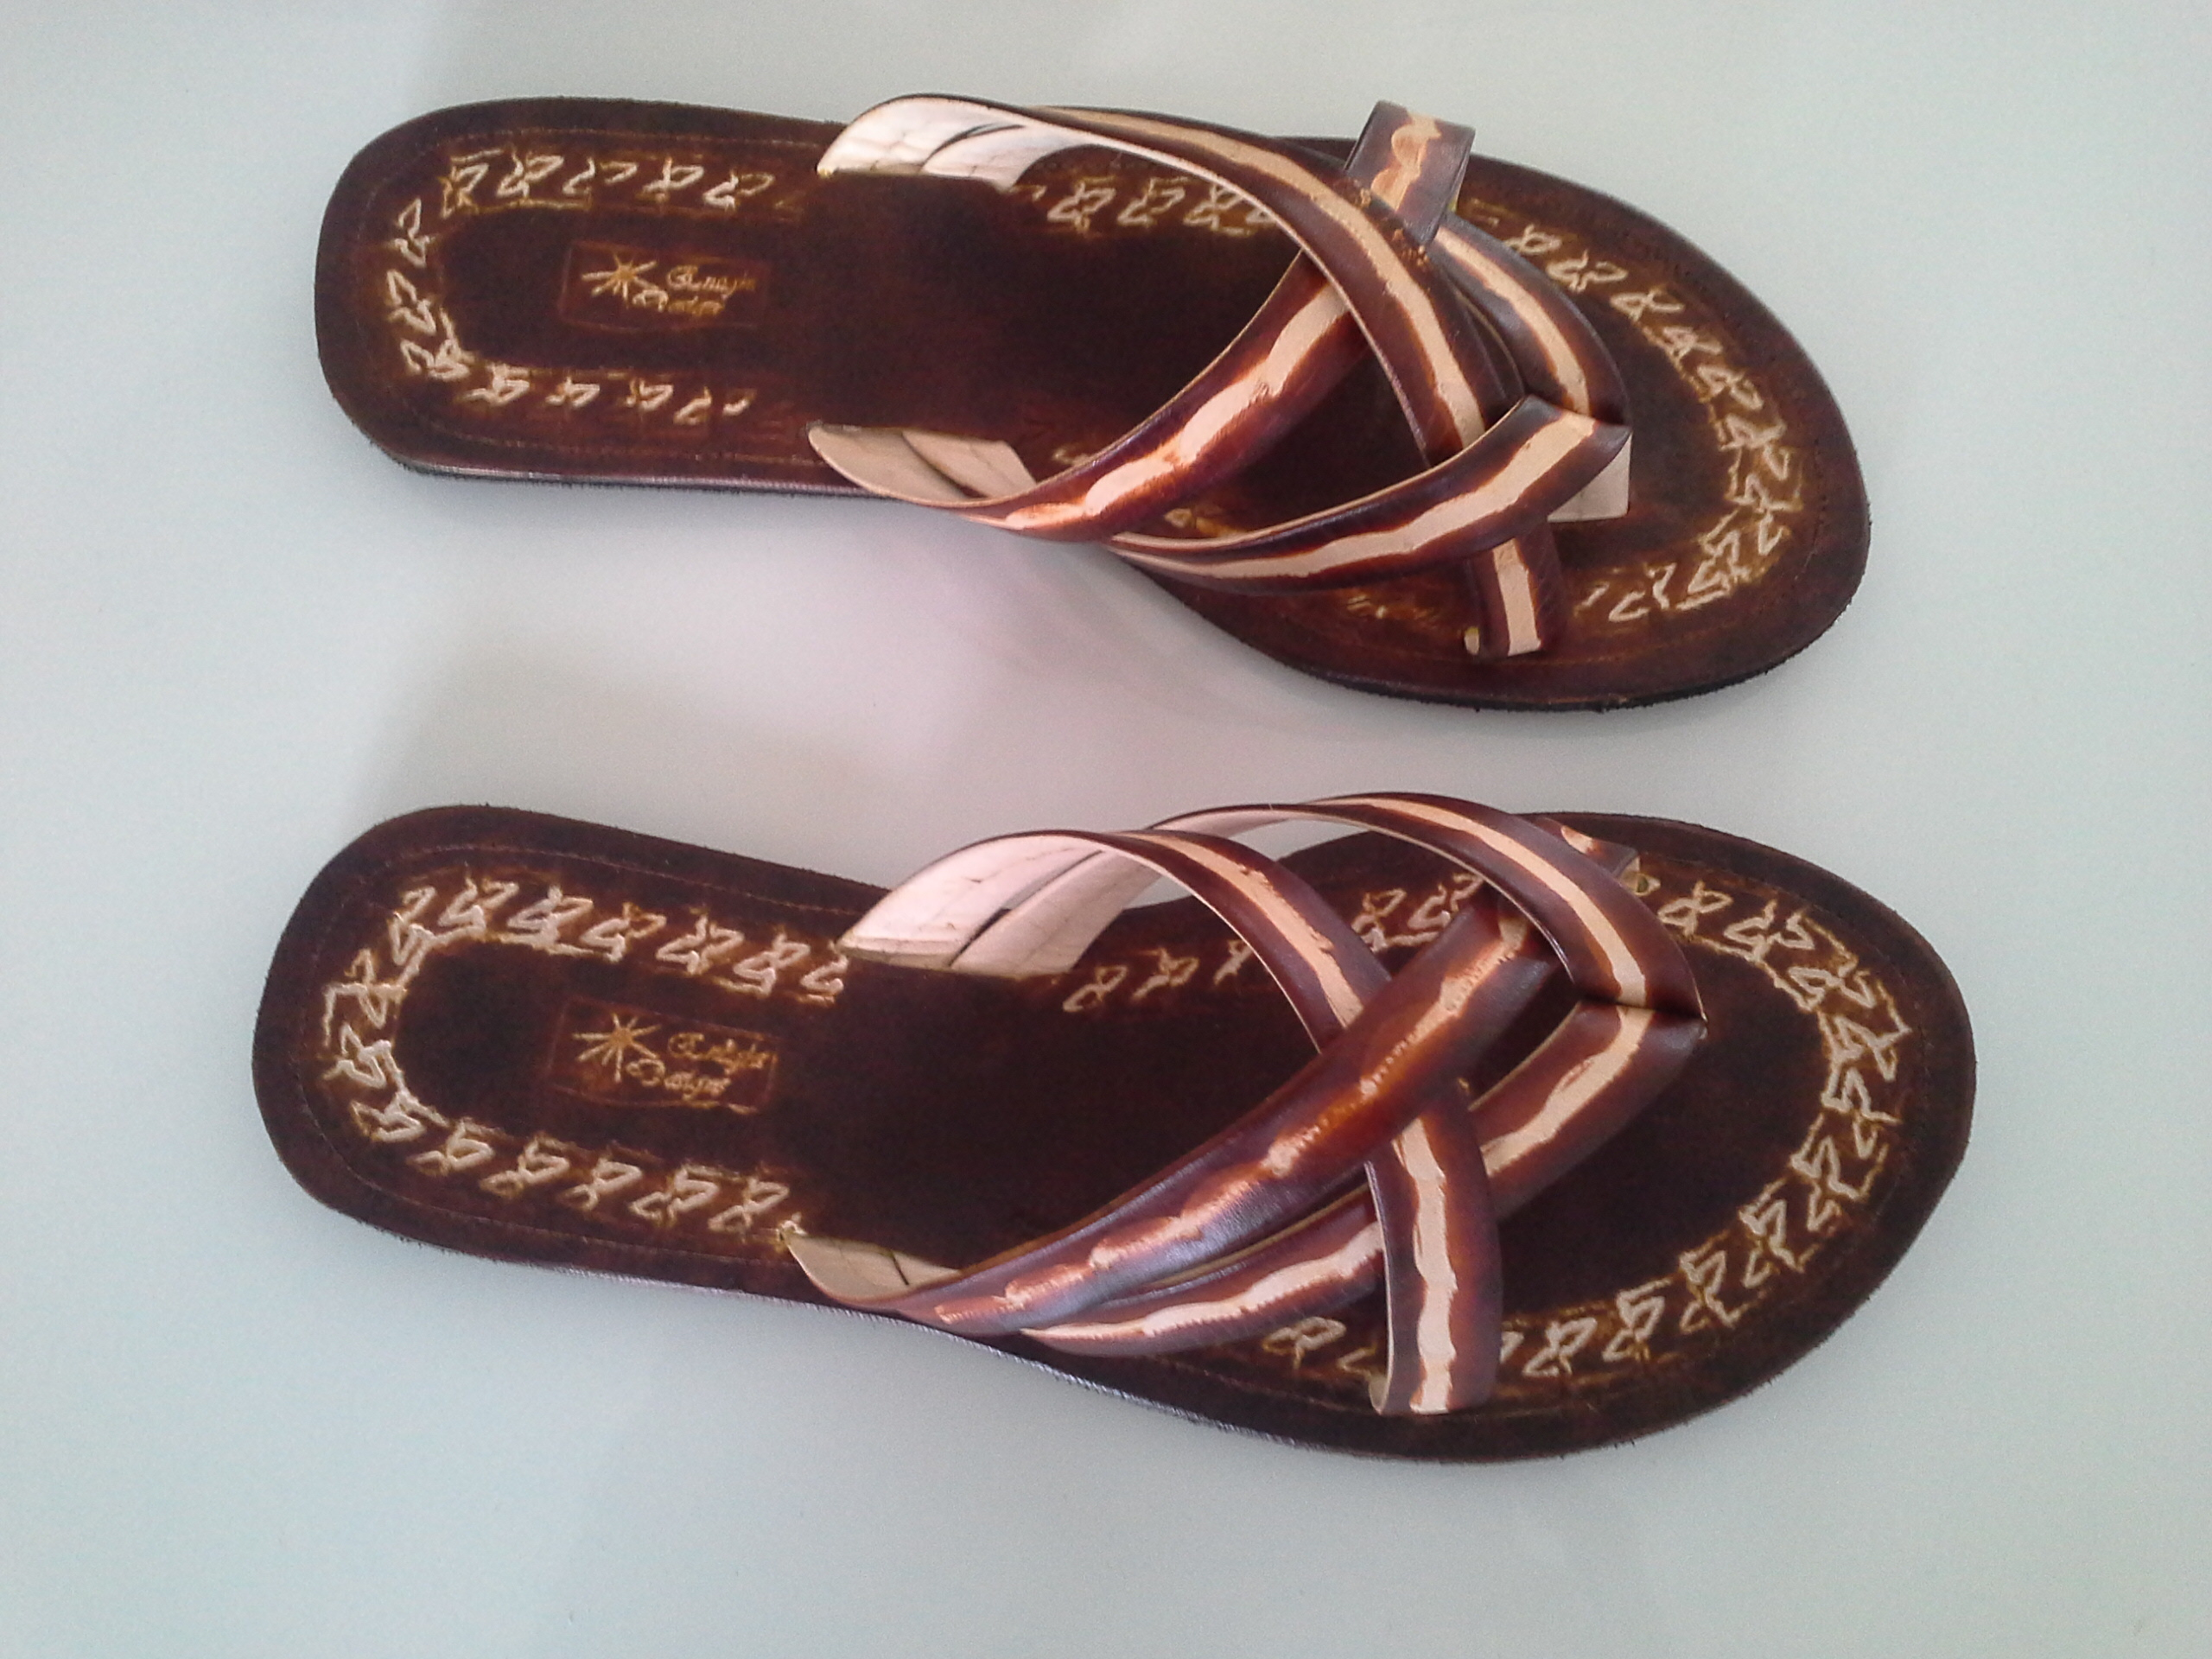 2428945cc2389c Shop online or visit our store for quality handmade summer leather sandals  you will love for men women and kids. We also make custom sizes leather  sandals ...